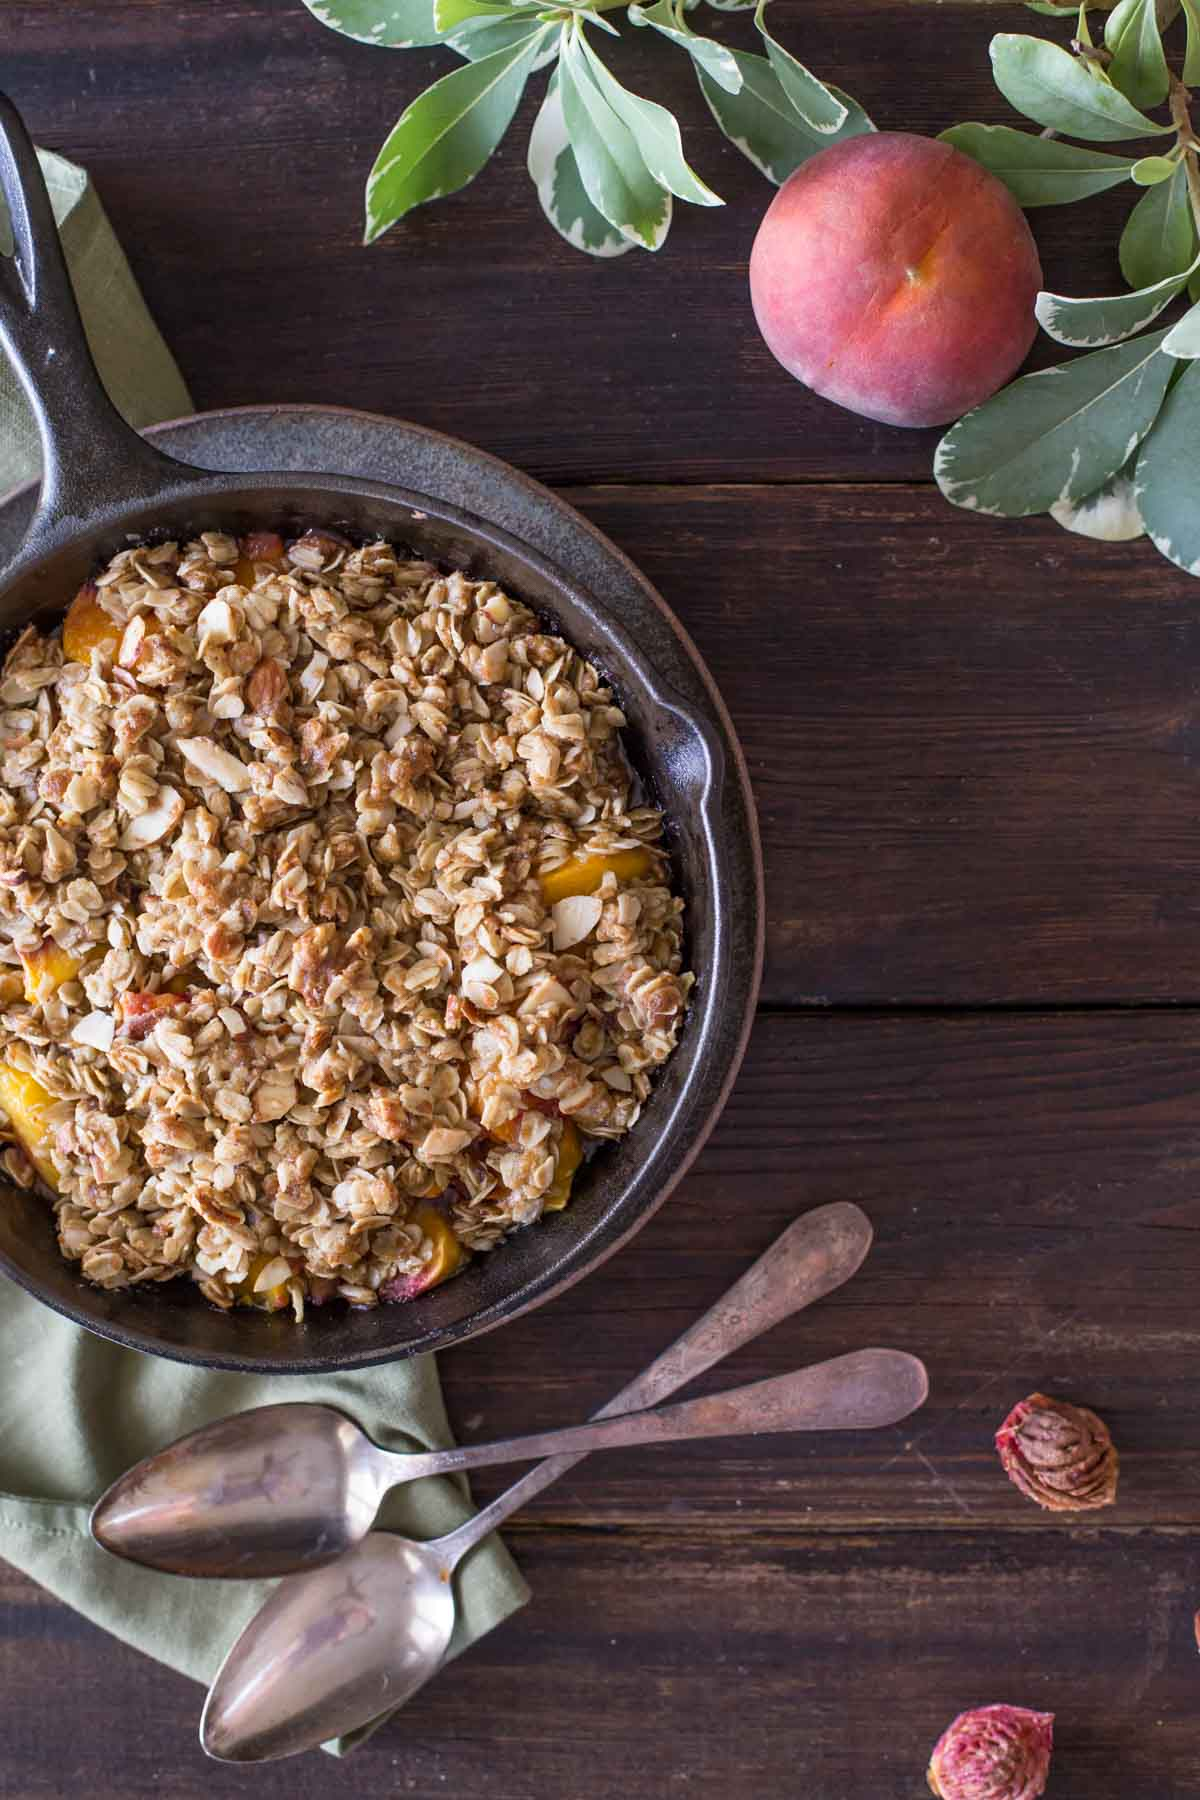 Easy Skillet Peach Crisp, with two spoons next to the skillet, as well as a whole peach and a couple peach pits.